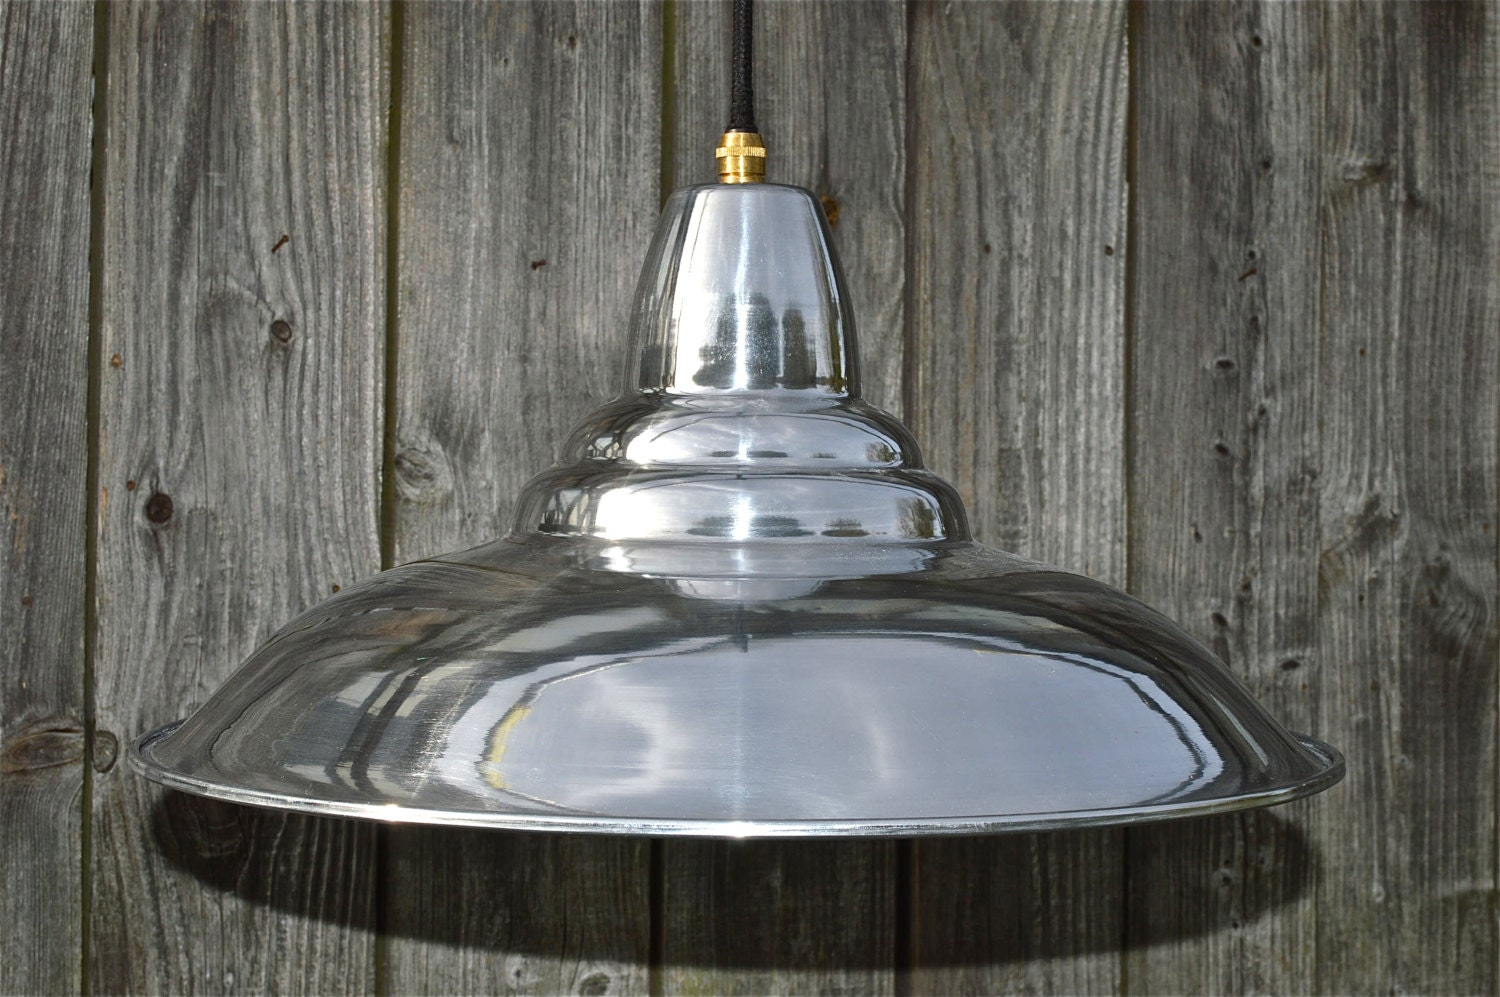 Cool retro styled polished ceiling light shade pendant lamp - Cool lamp shade ...